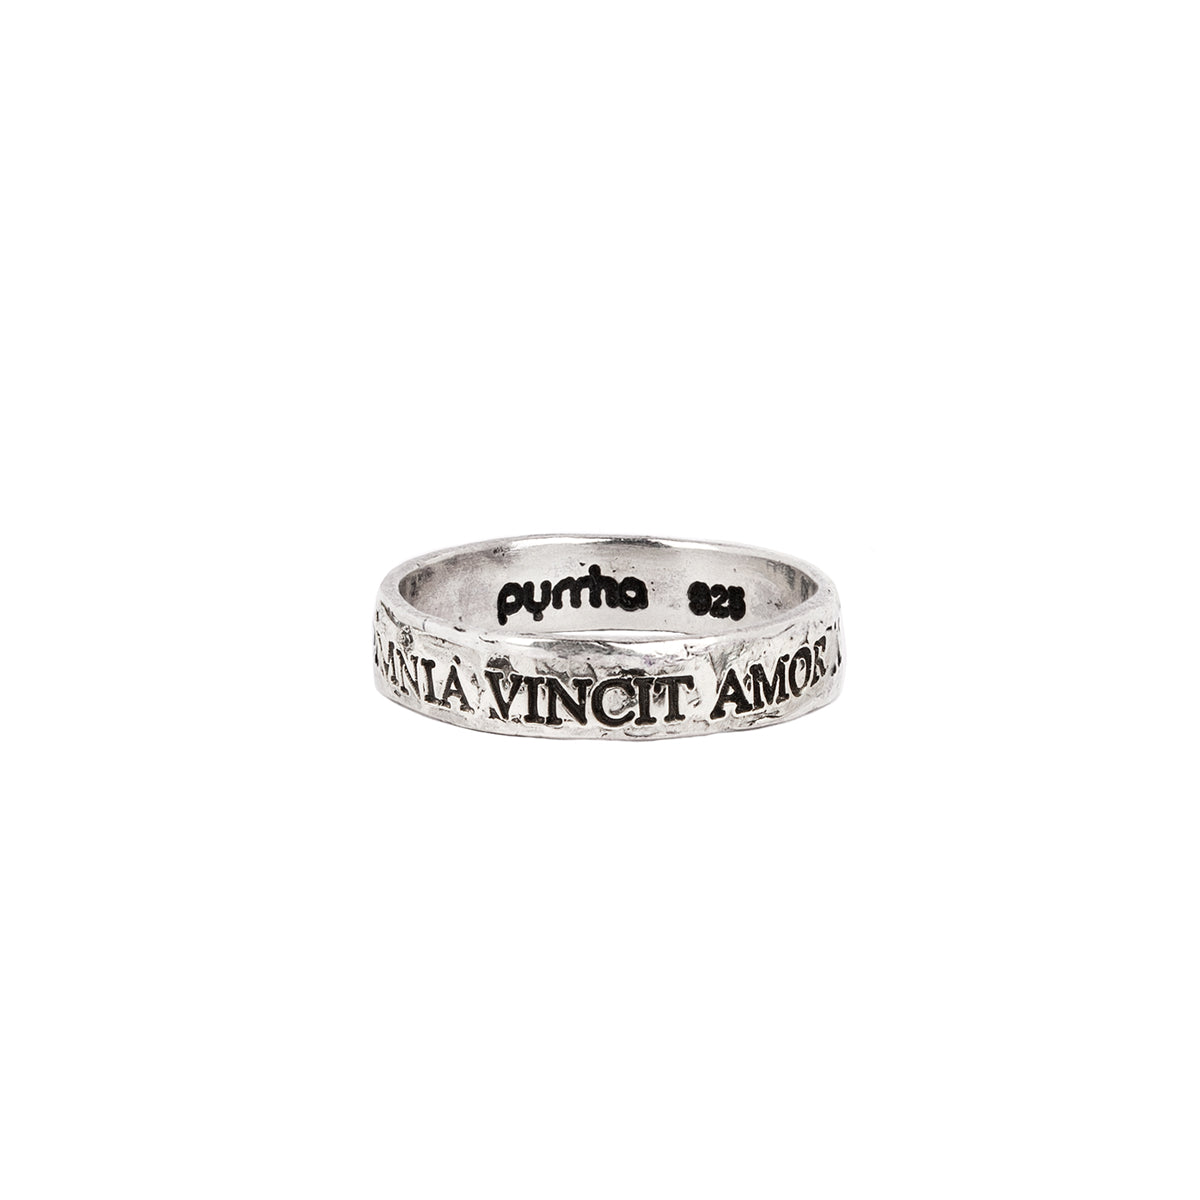 Omnia Vincit Amor Latin Motto Band Ring